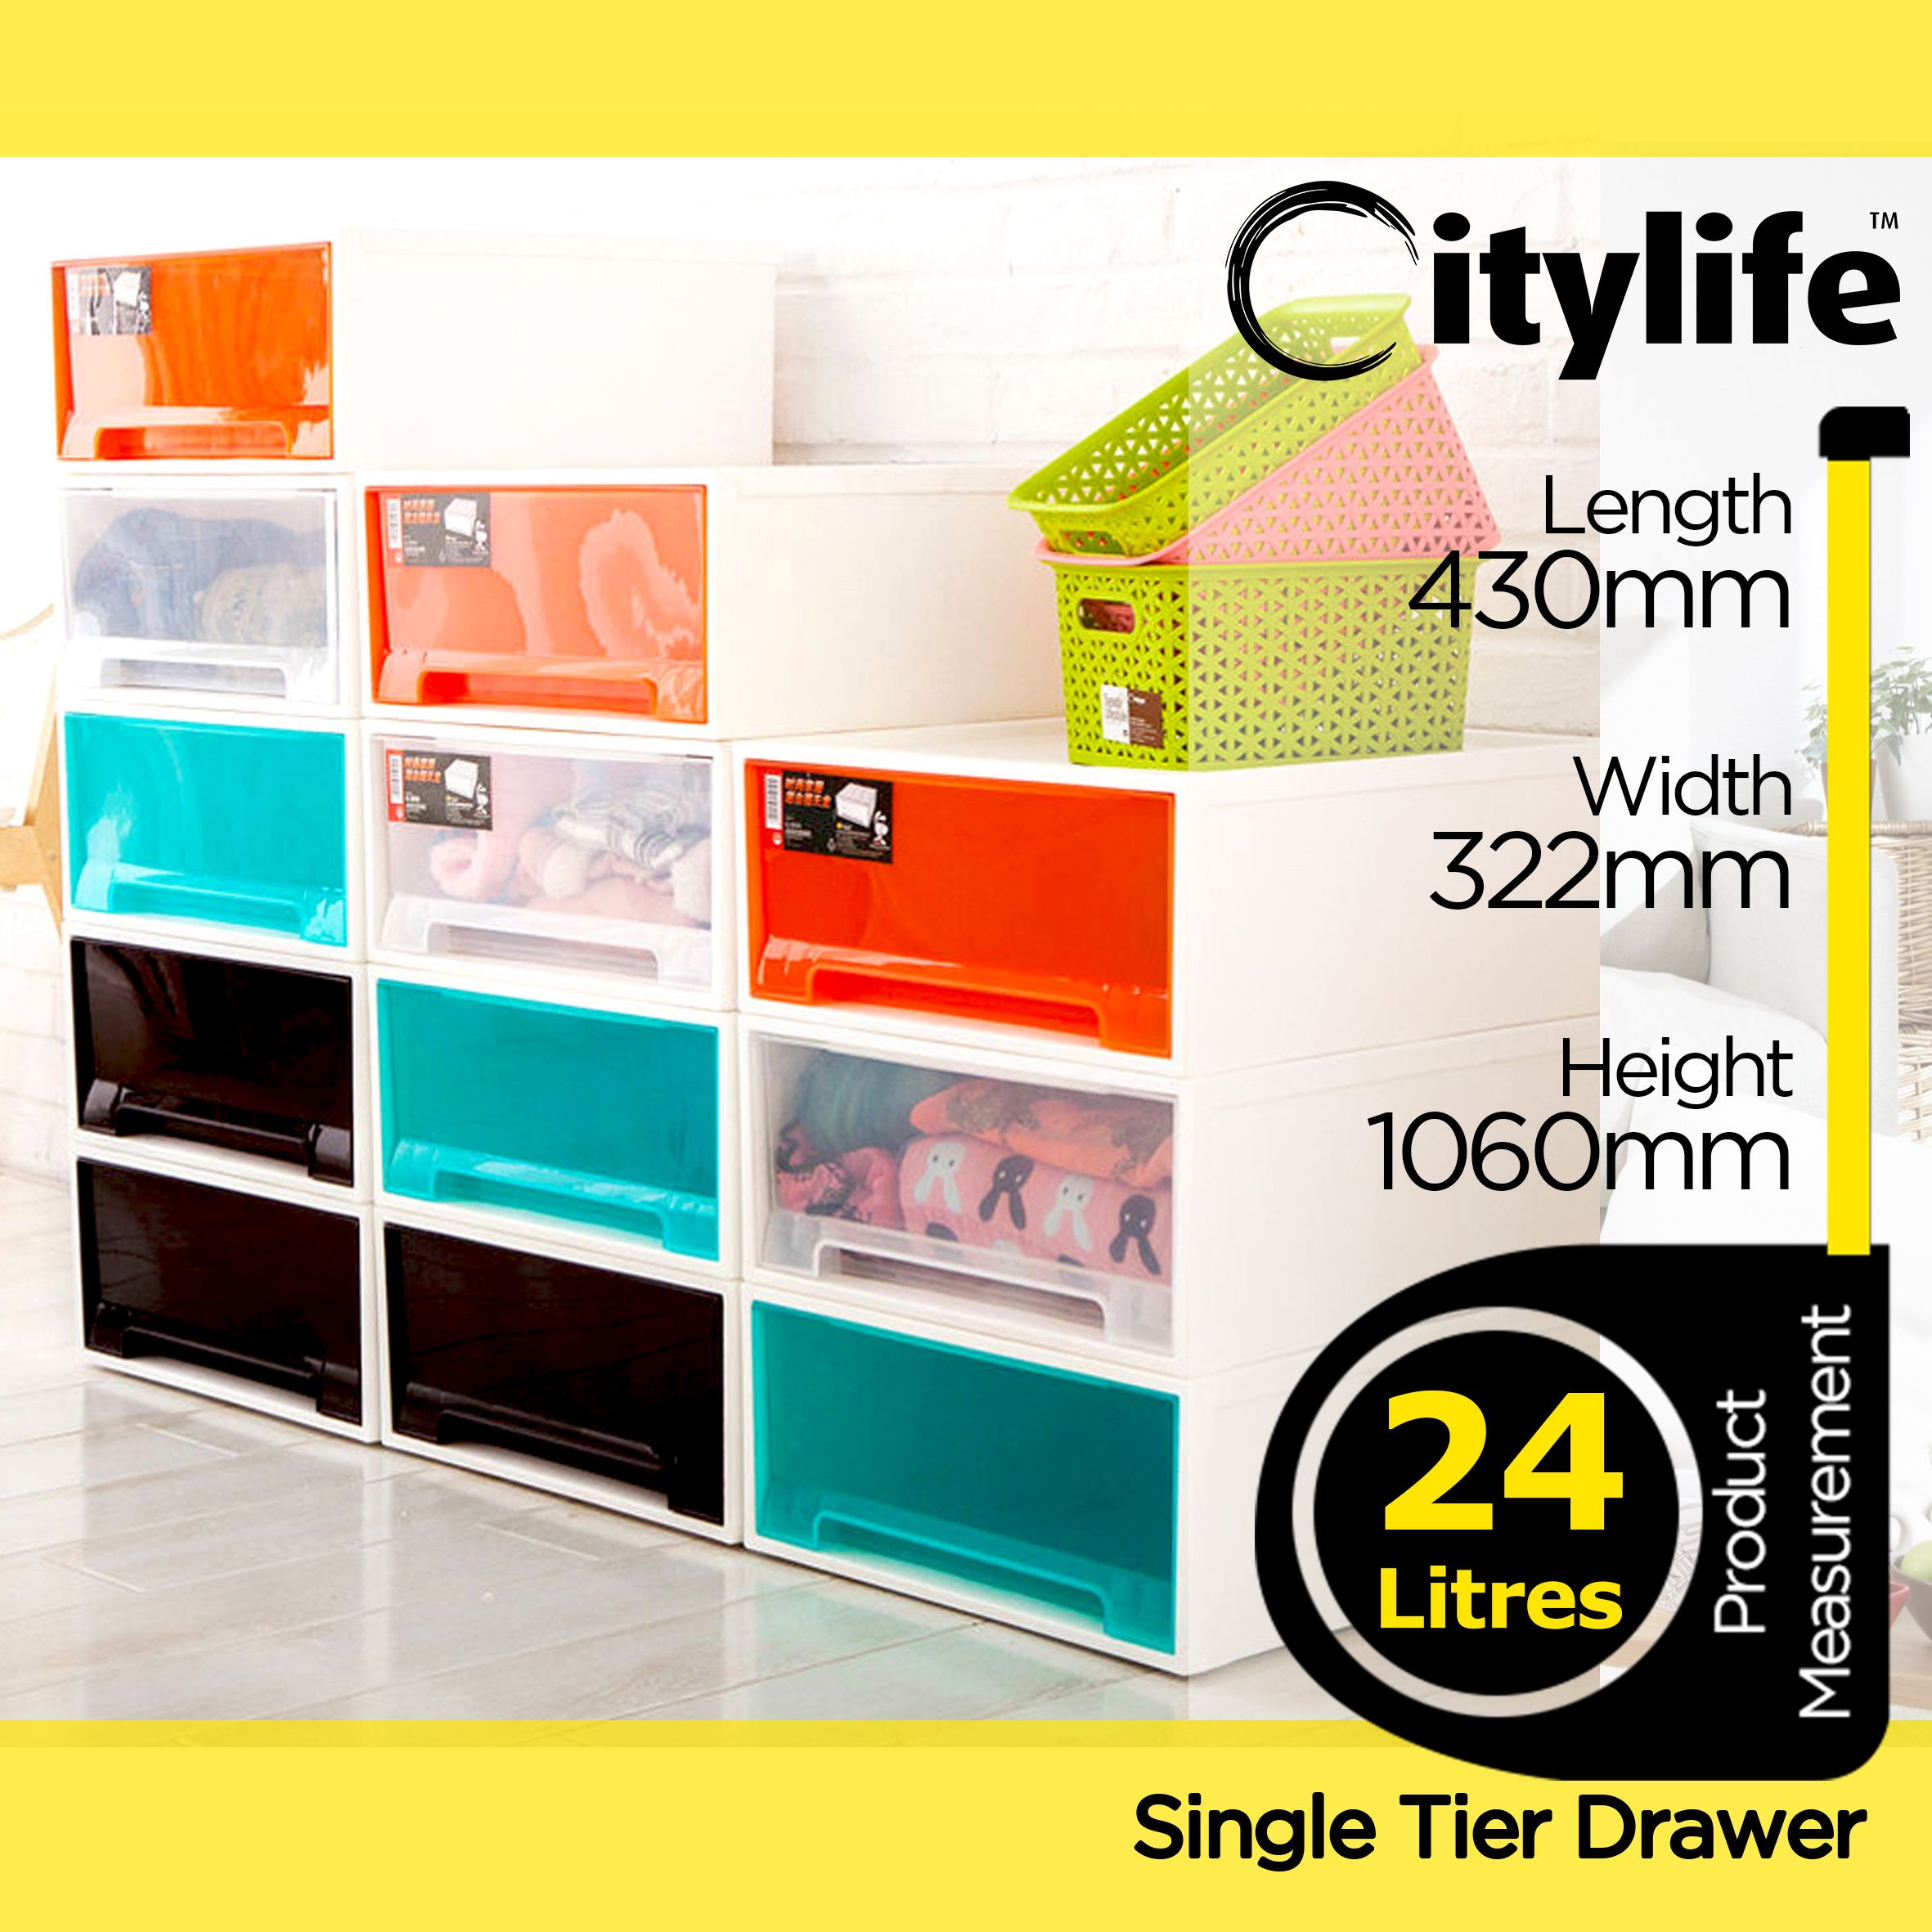 Rice Storage Container Singapore Part - 15: Citylife? Online Exclusive ? Citylife 24L Signature Single Tier Drawer ?  Bundle Of 4 ? FREE Delivery. Plastic Storage ContainersSingaporeDrawers ...